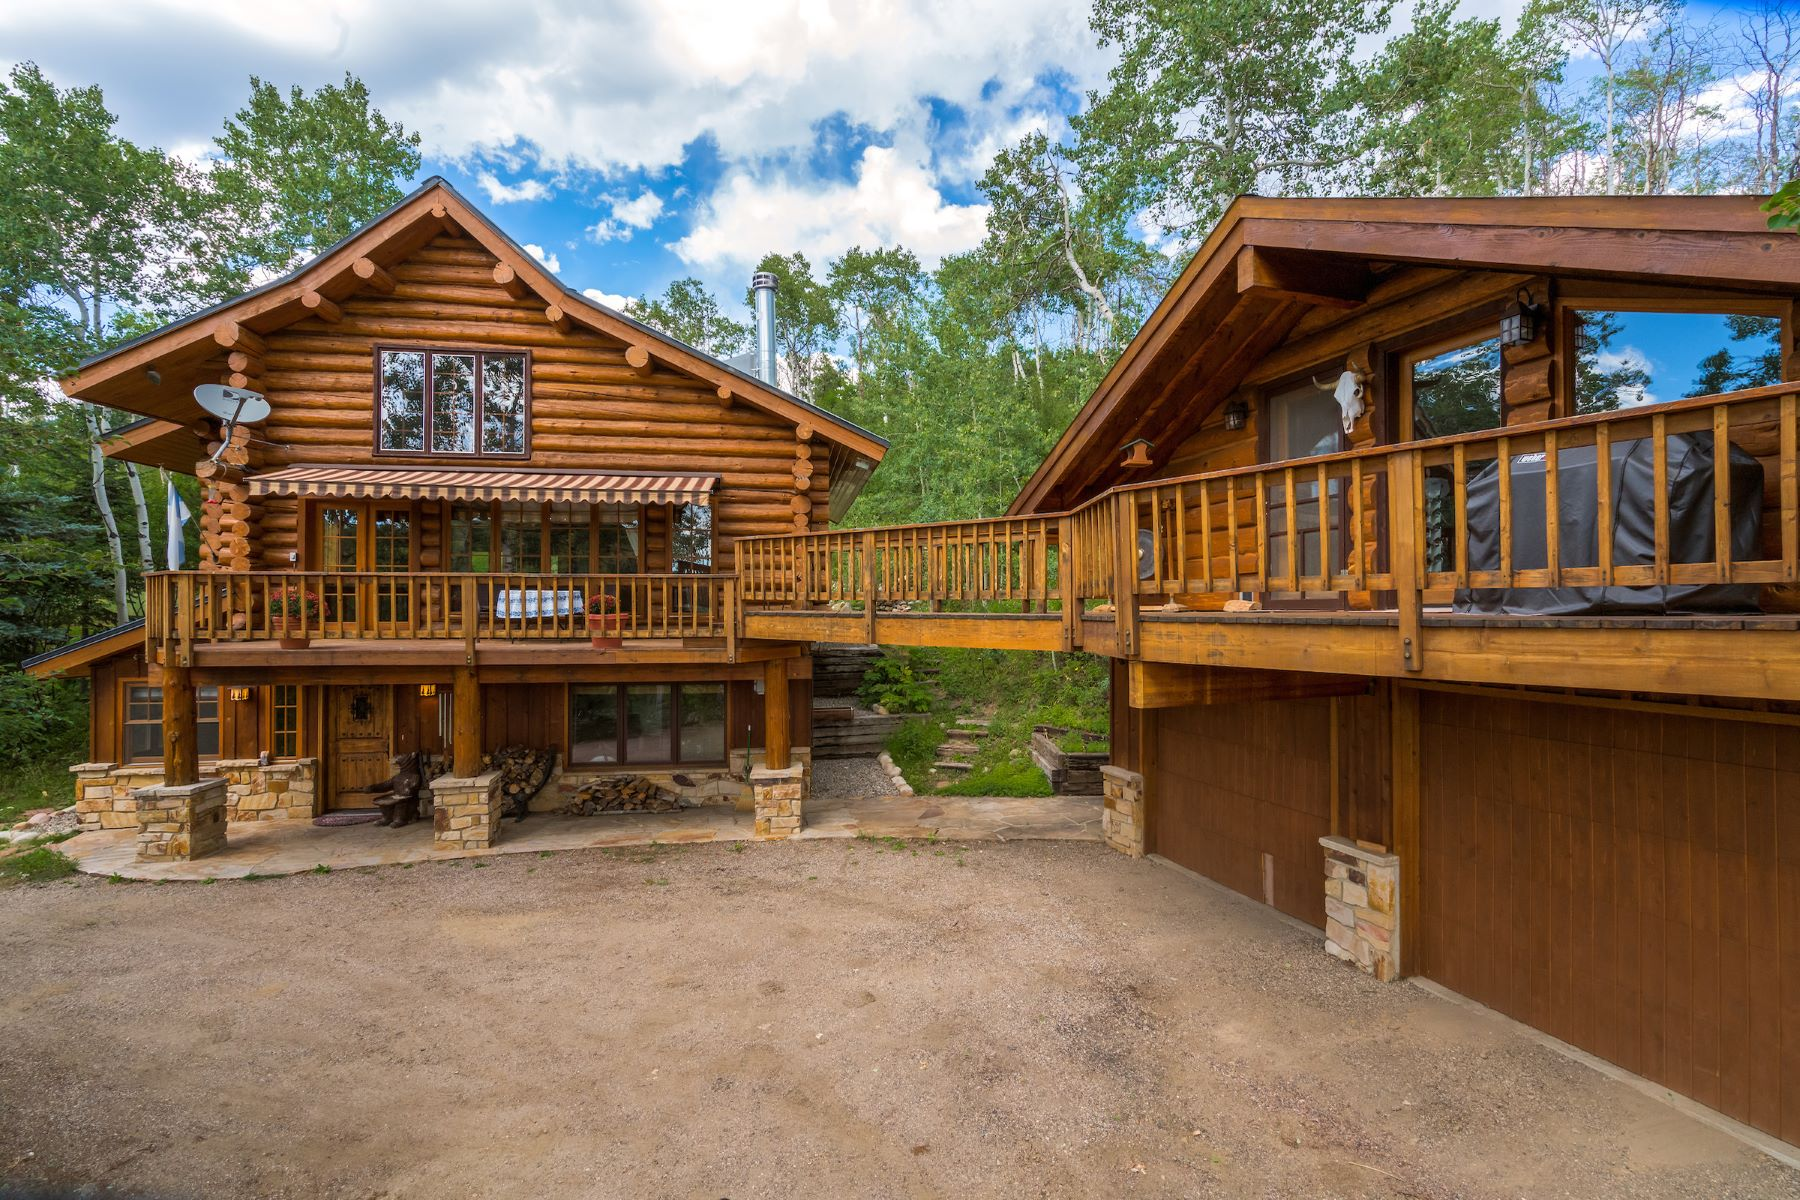 Single Family Home for Sale at Whitewood Log Home 27875 Whitewood Dr E Steamboat Springs, Colorado 80487 United States